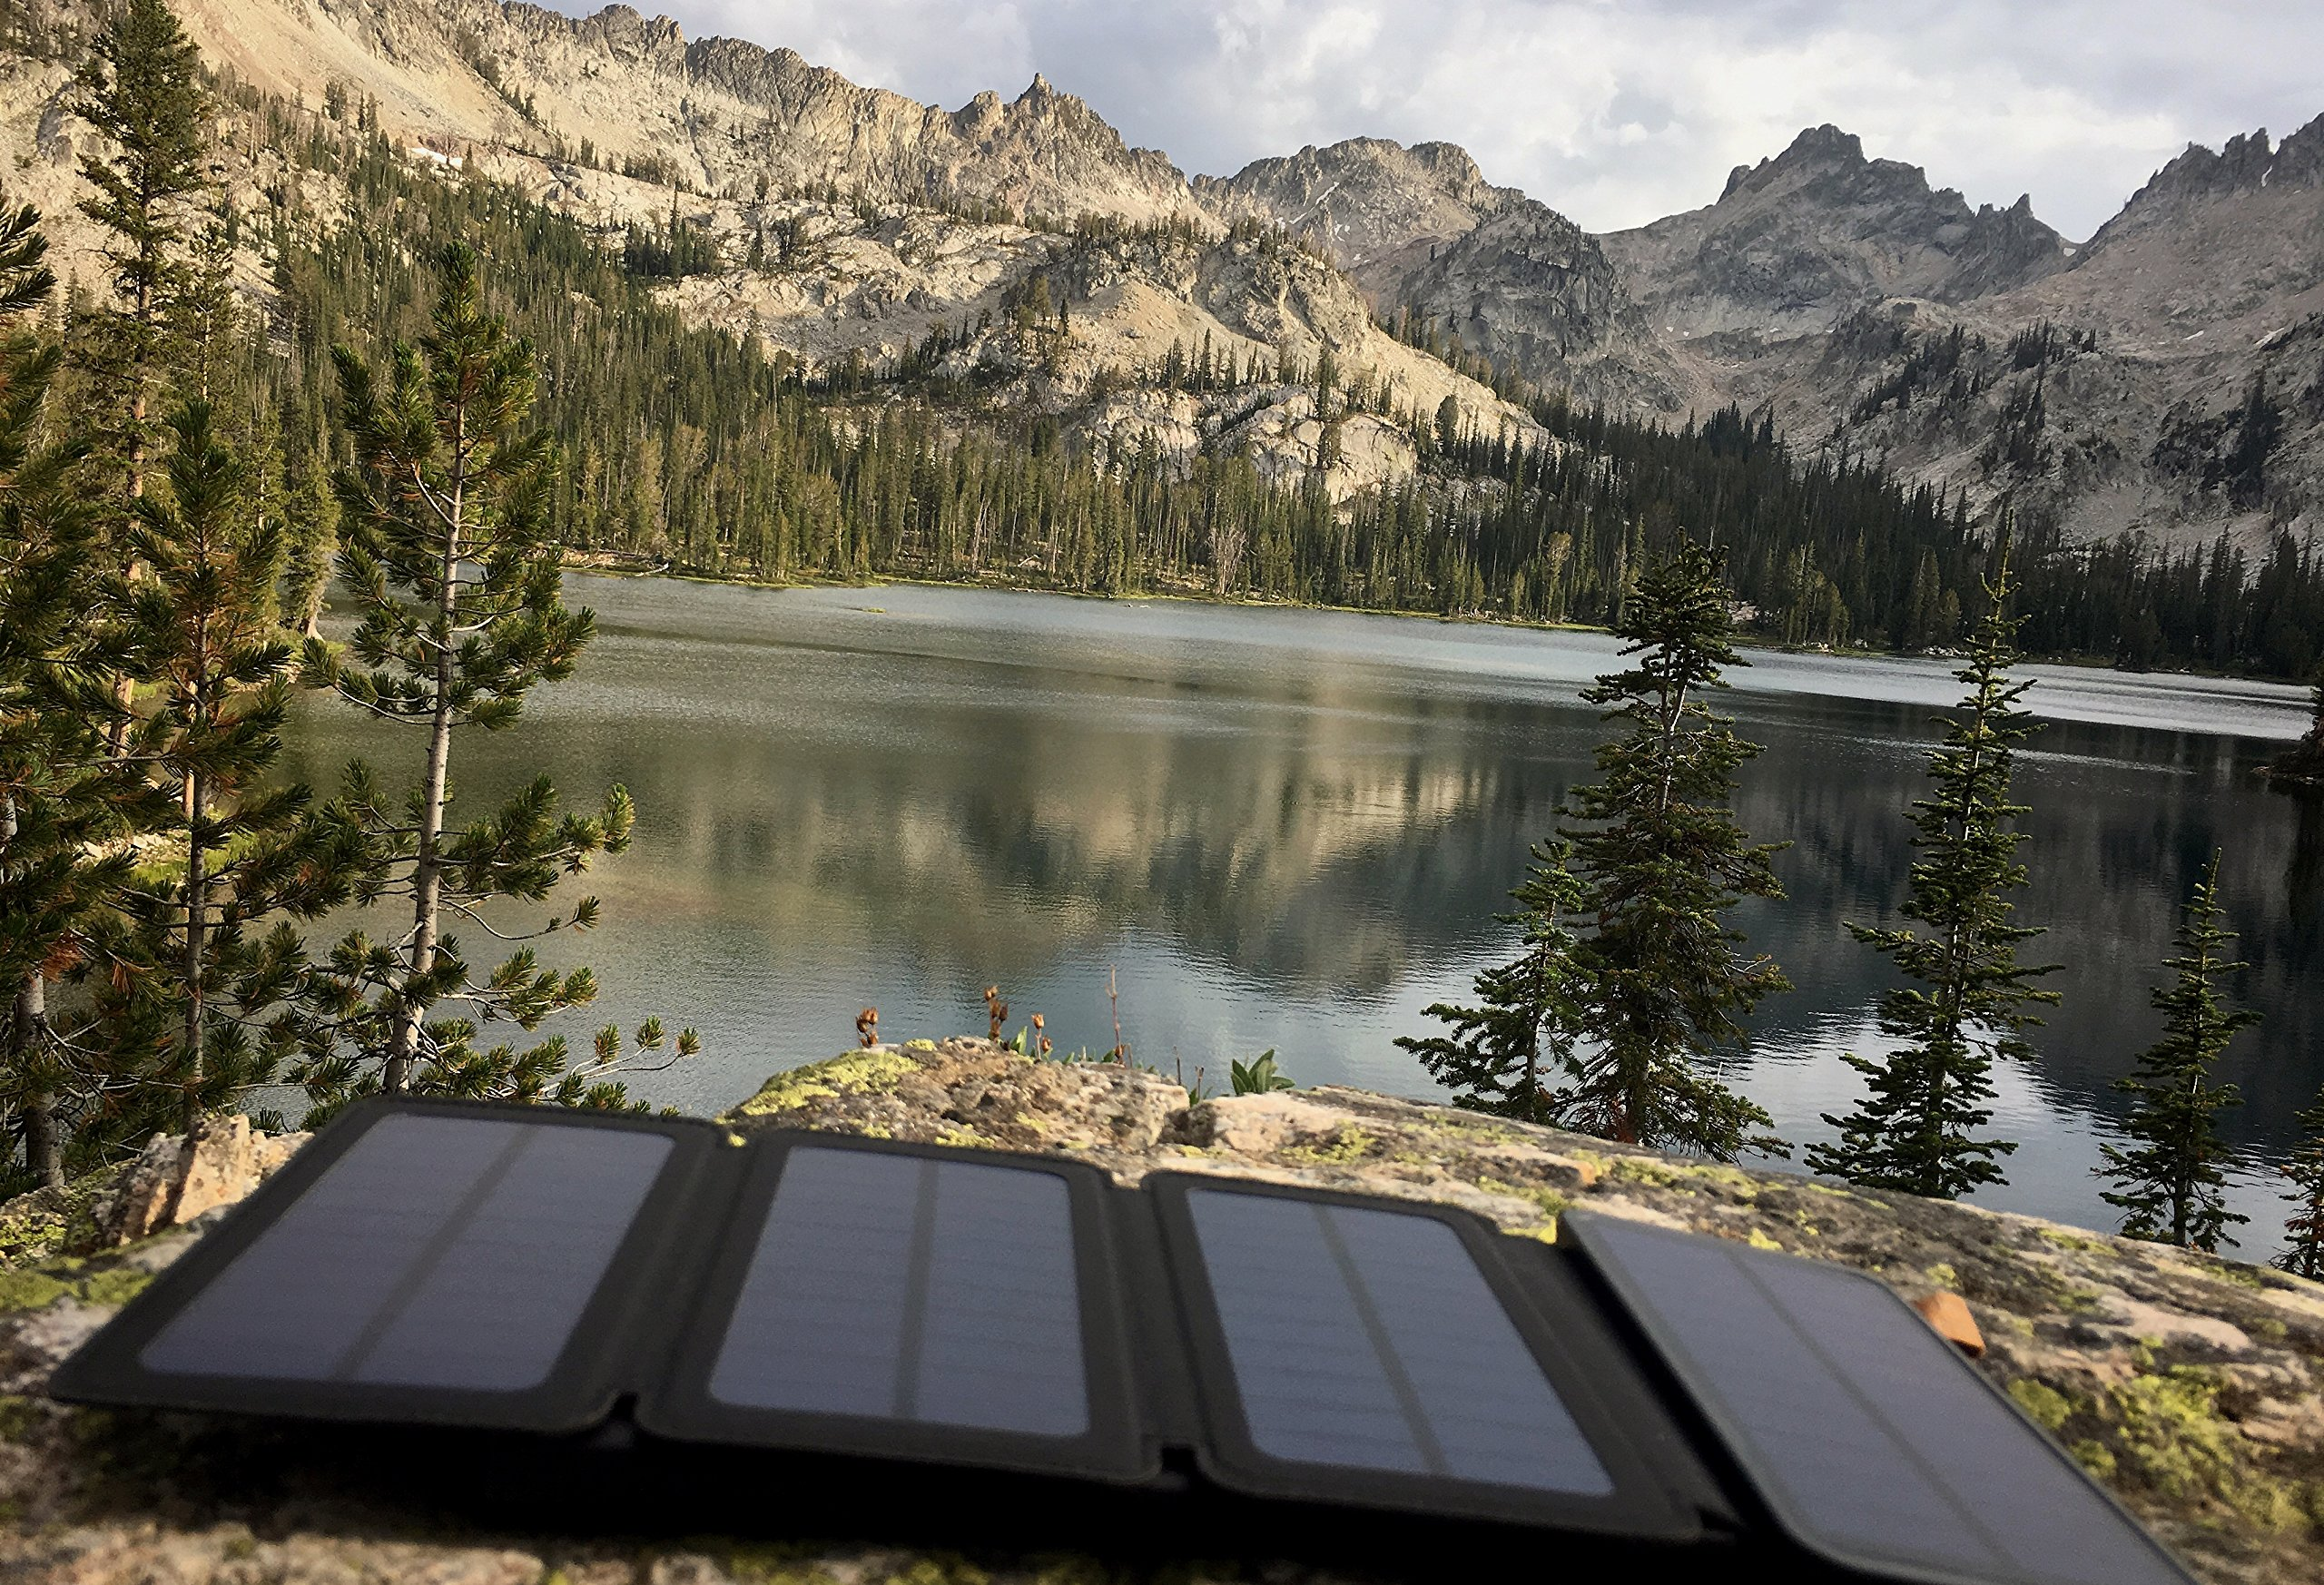 SunJack 5W Solar Charger Power Bank Portable External Battery with Flashlight for iPhone, iPad, Samsung, Backpacking, Camping, Hiking by SunJack (Image #5)